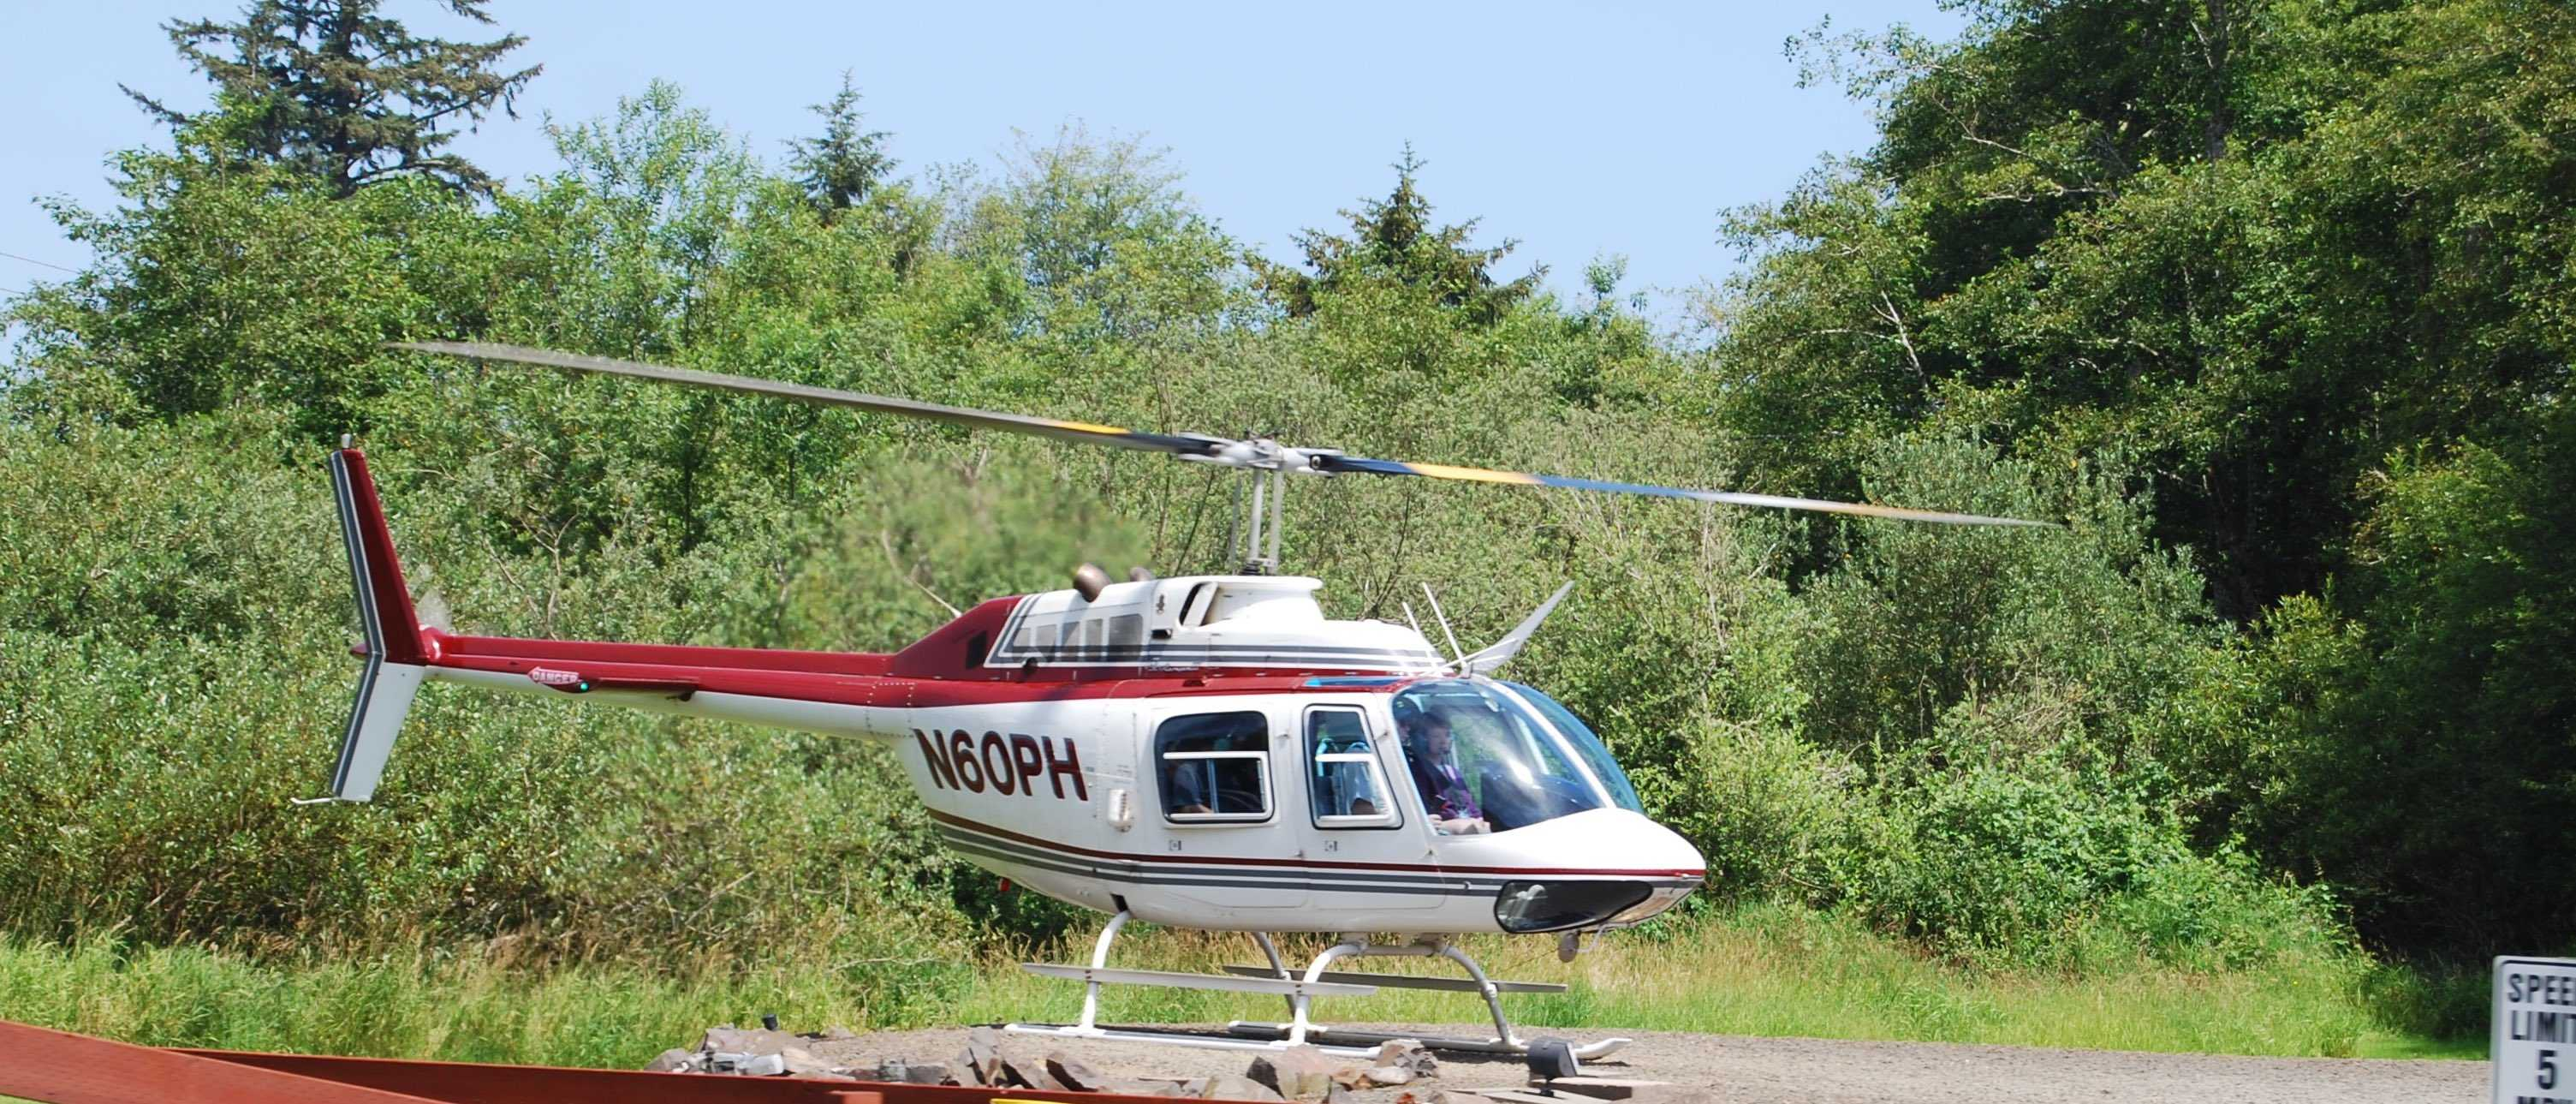 FAA Commercial Pilot License Helicopter